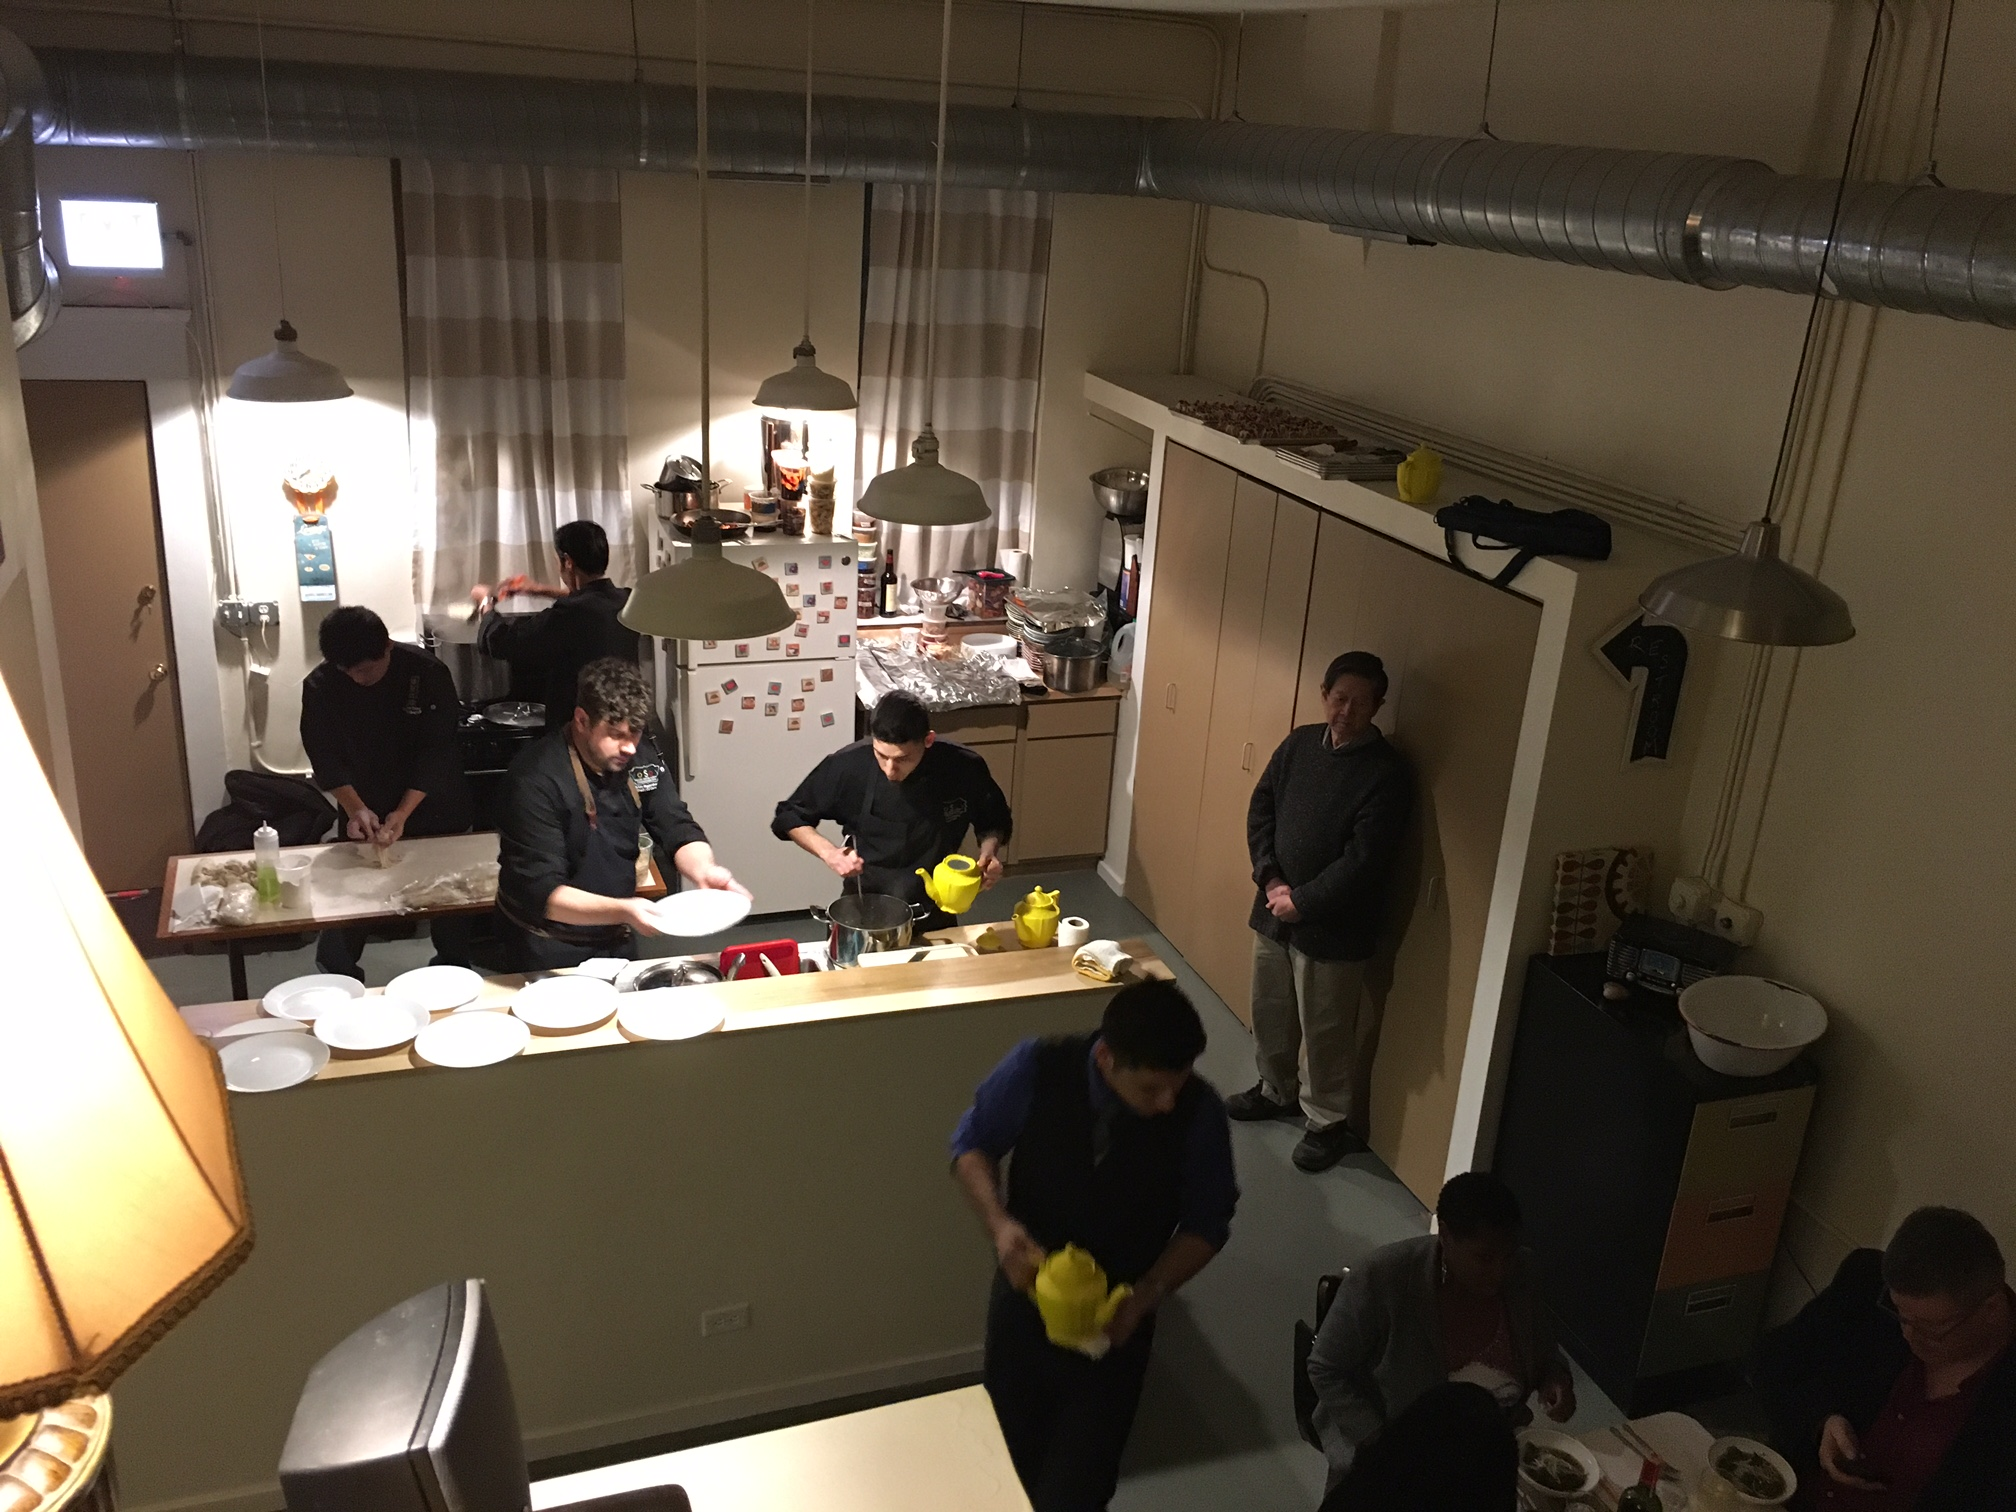 The Kitchen at Bespeak Studios with chef